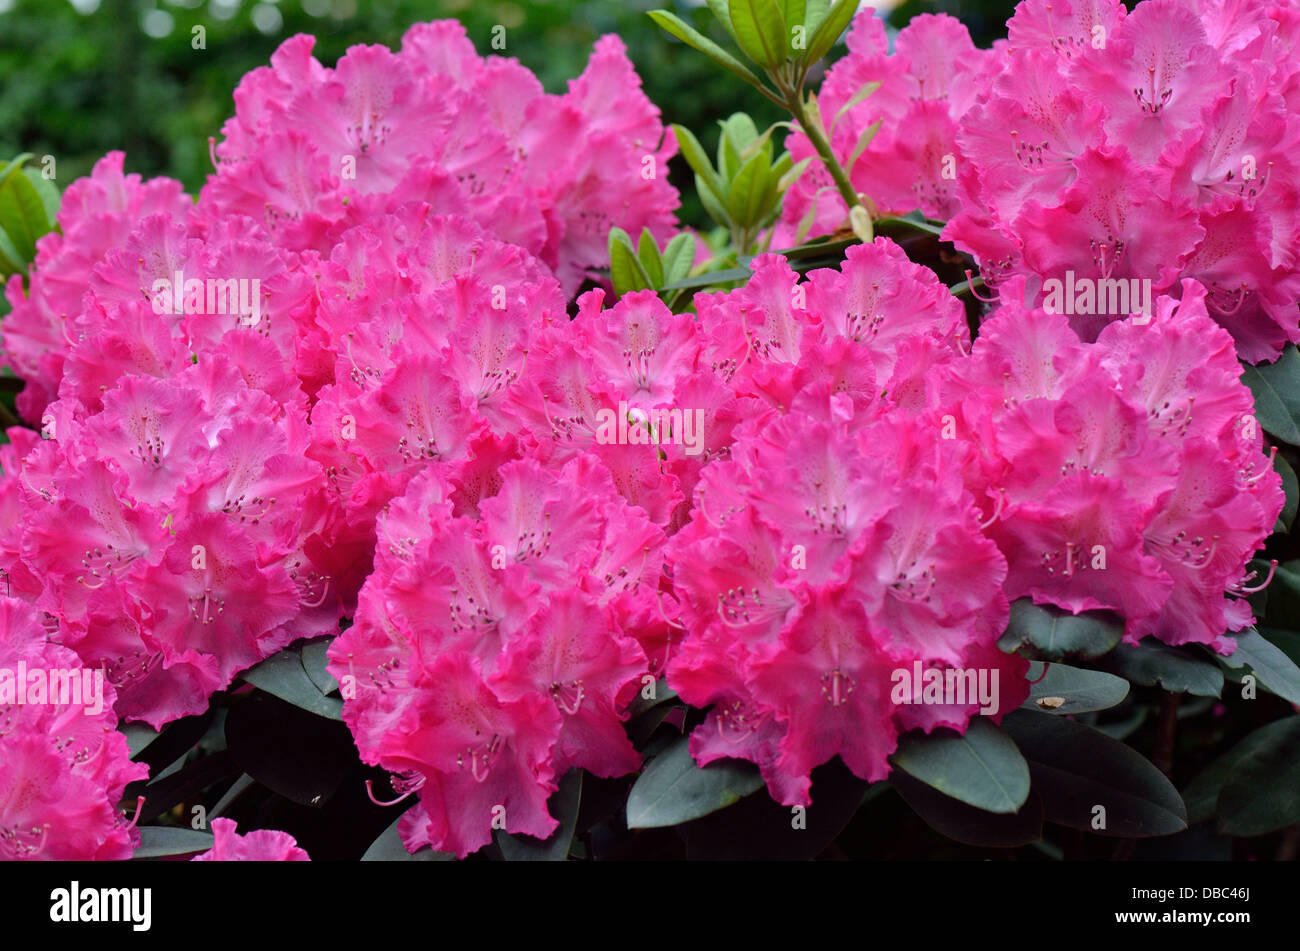 Pink purple rich Rhododendron Germania blossom - Stock Image